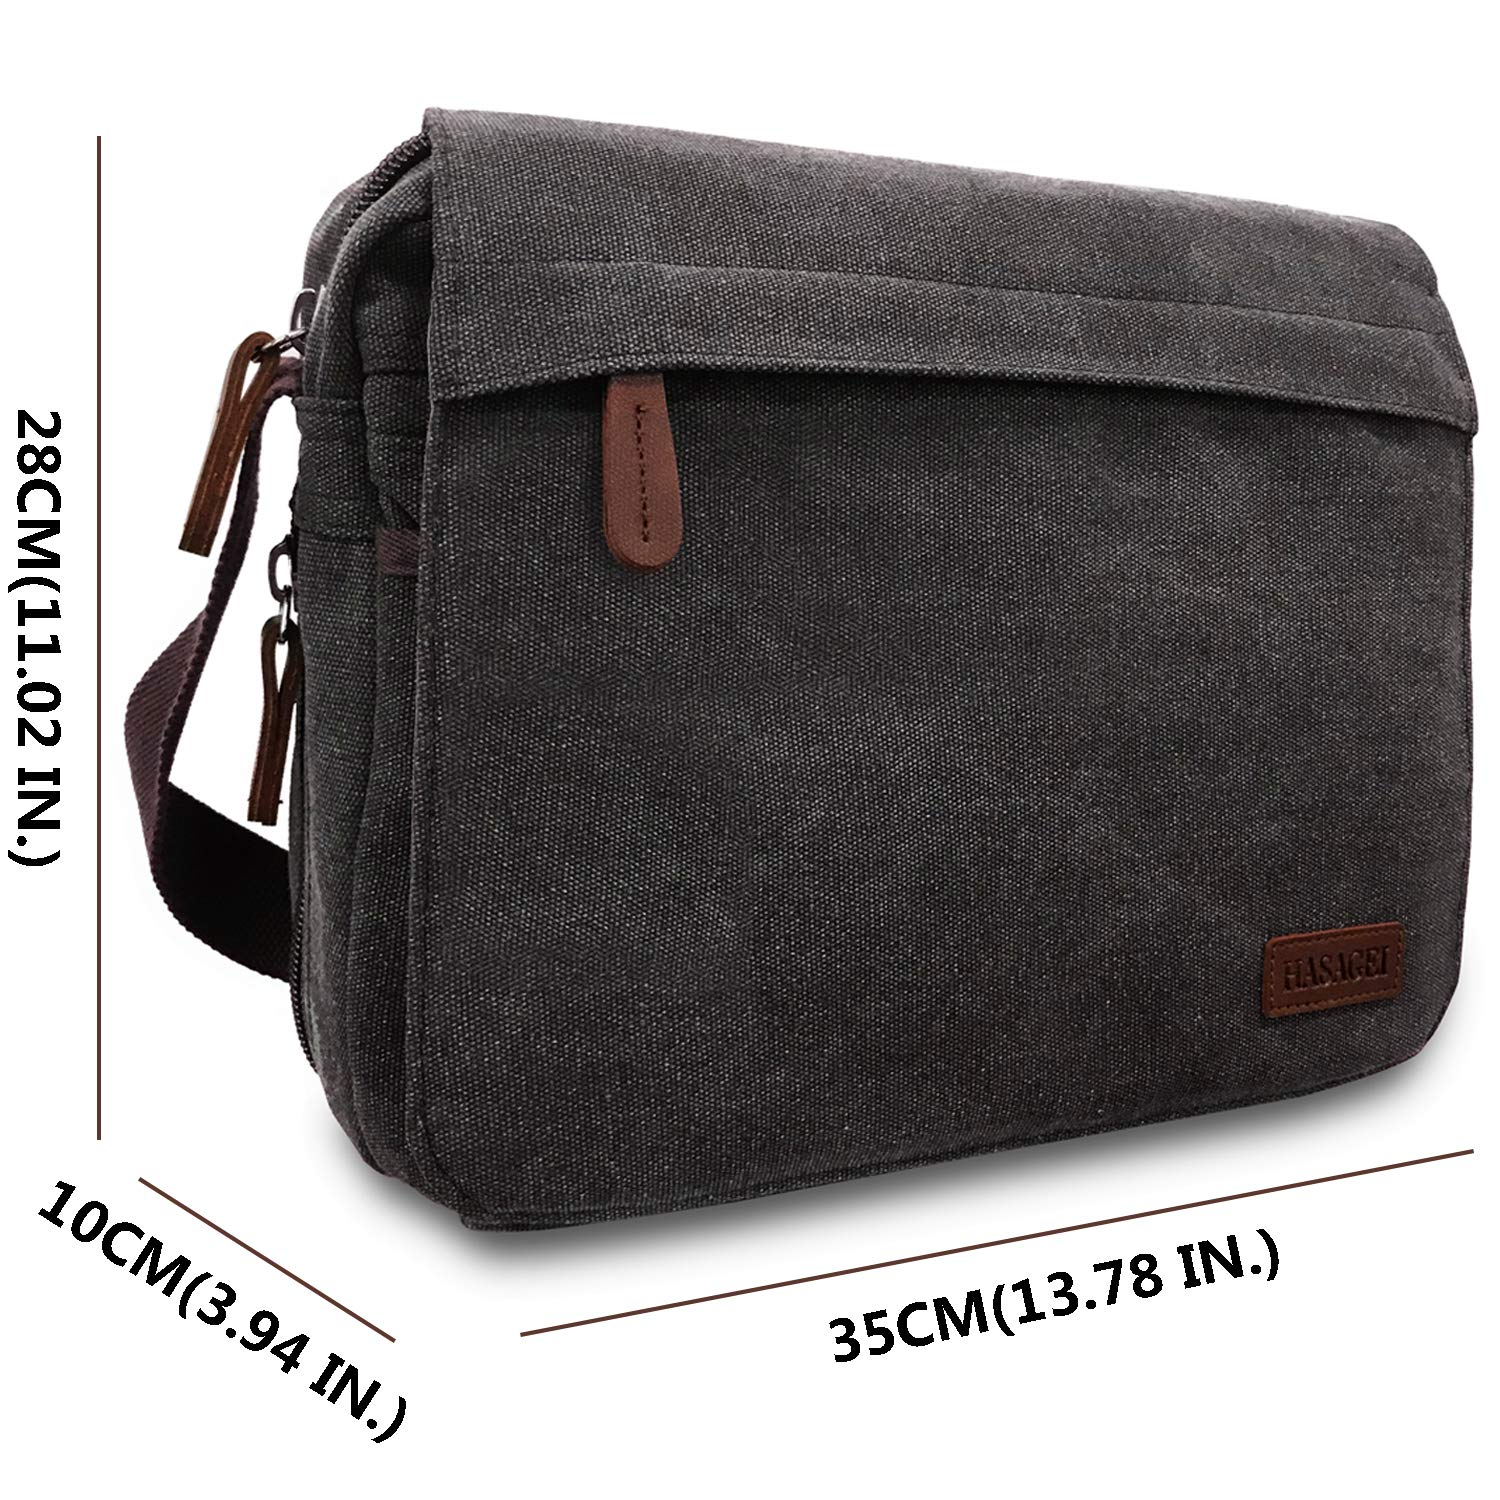 HASAGEI Men s Canvas Messenger Shoulder Bag Men s Messenger Bags Retro  Canvas Crossbody Bag Laptop Bag Satchel Bag Black  Amazon.co.uk  Shoes    Bags 287763bd0